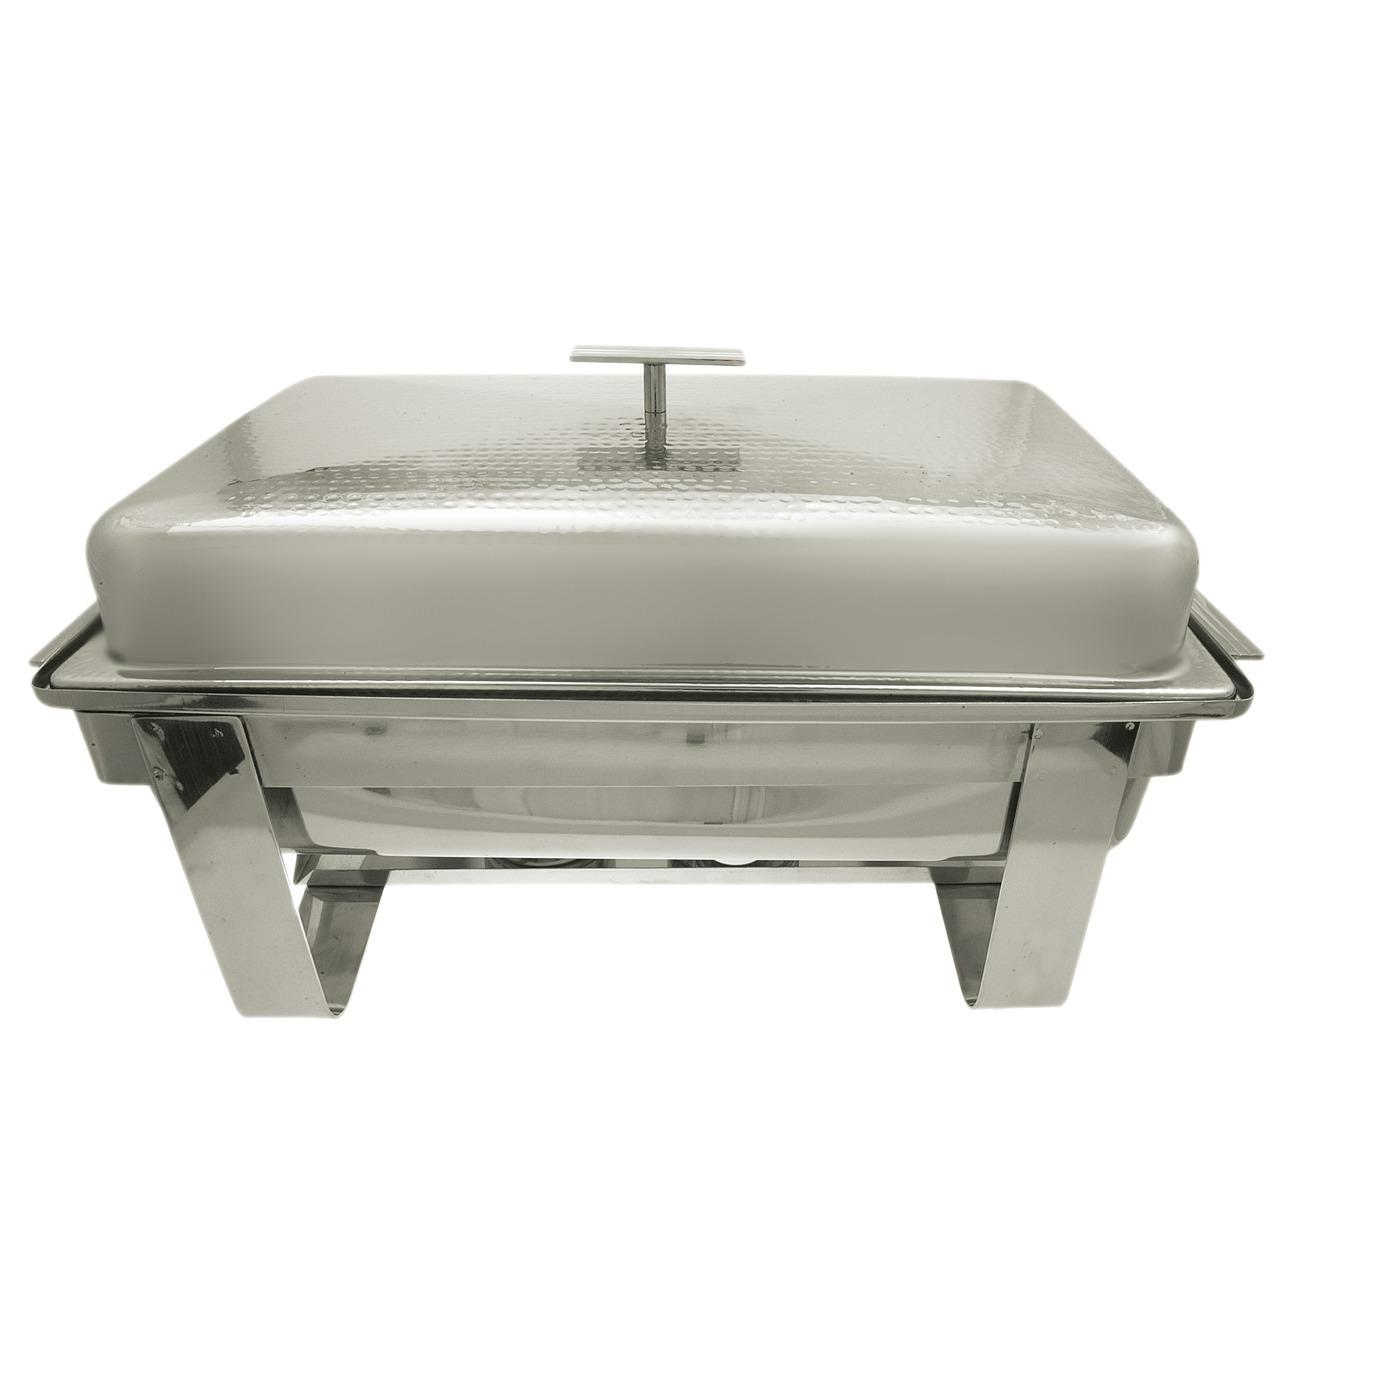 Stainless Steel Hammered Chafer - Oblong 8 Quart